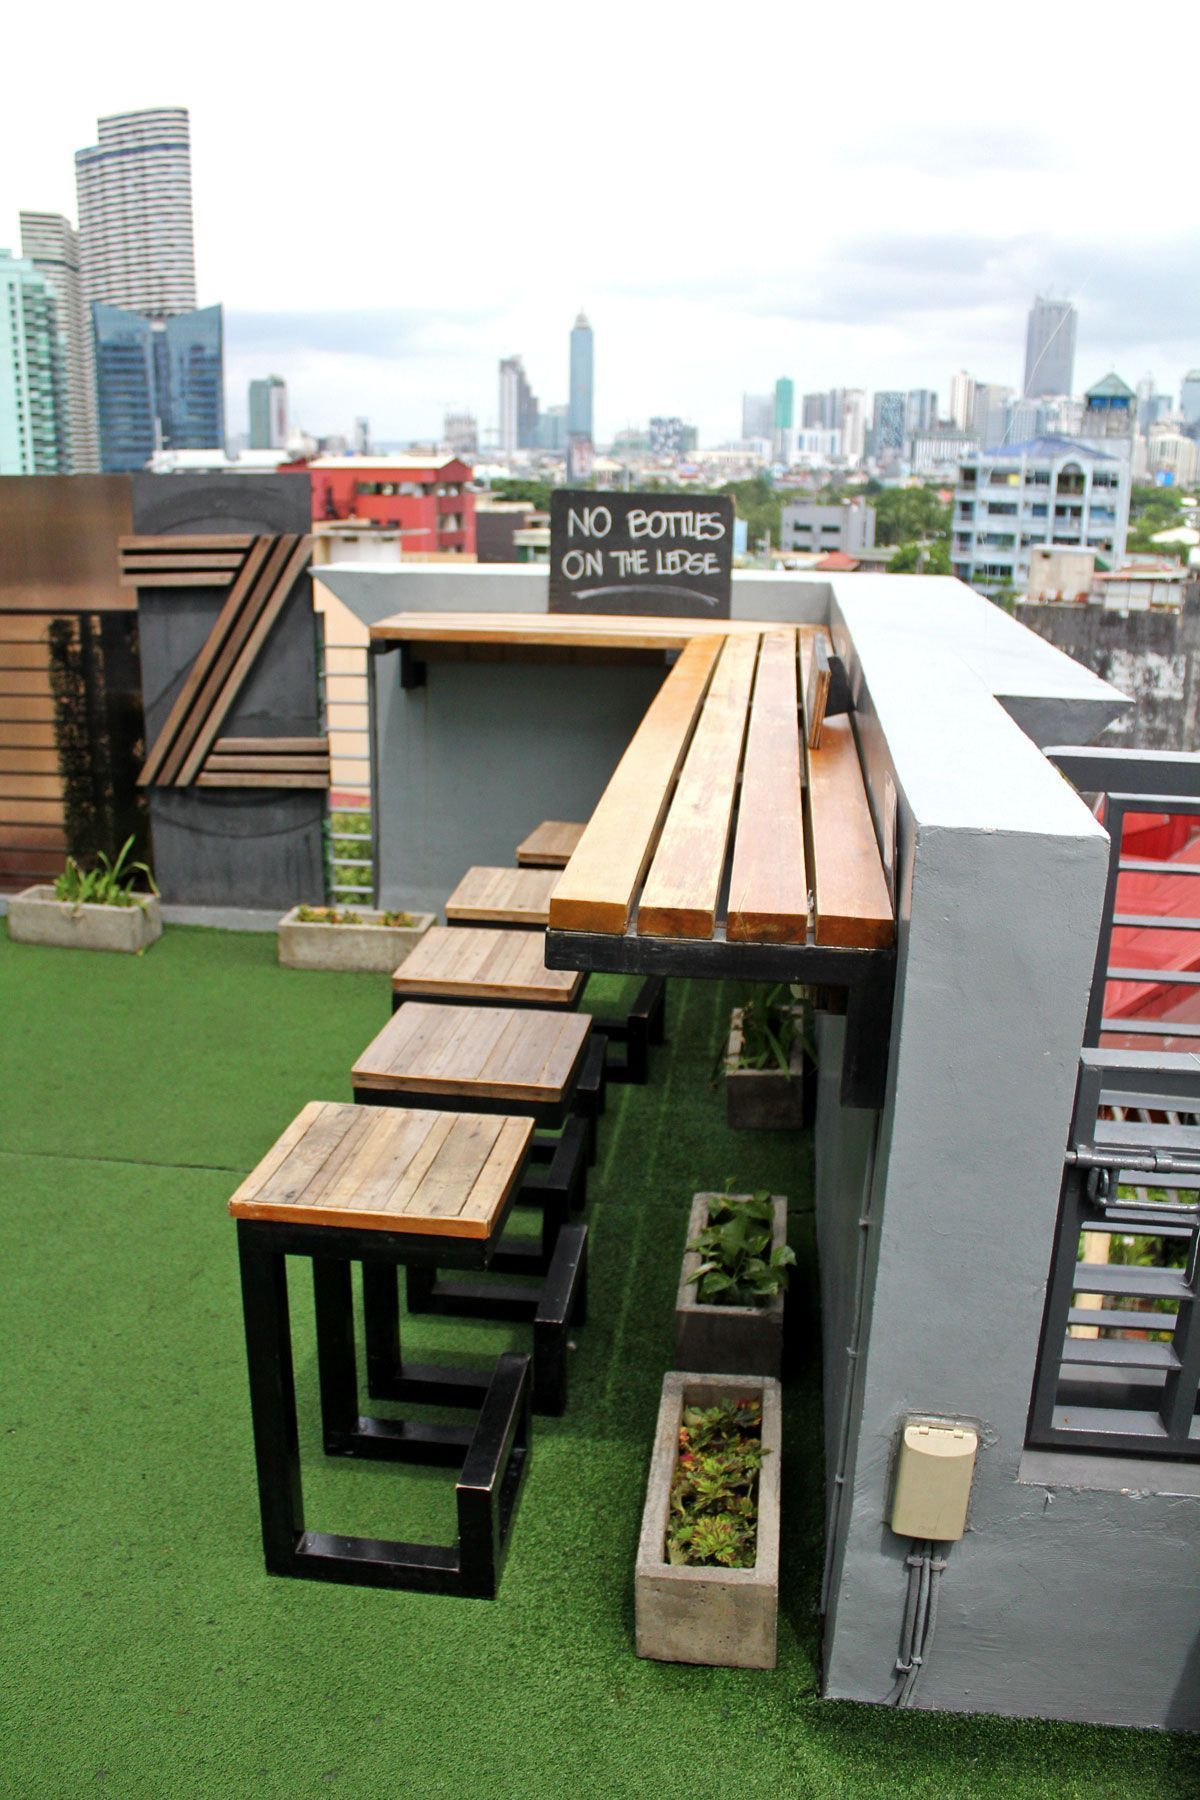 Nice Best 50 Rooftop Terrace Ideas For Your Home And Remodelhttps Homeofpondo Com Best 50 Rooftop Terrace Rooftop Design Rooftop Terrace Design Rooftop Patio